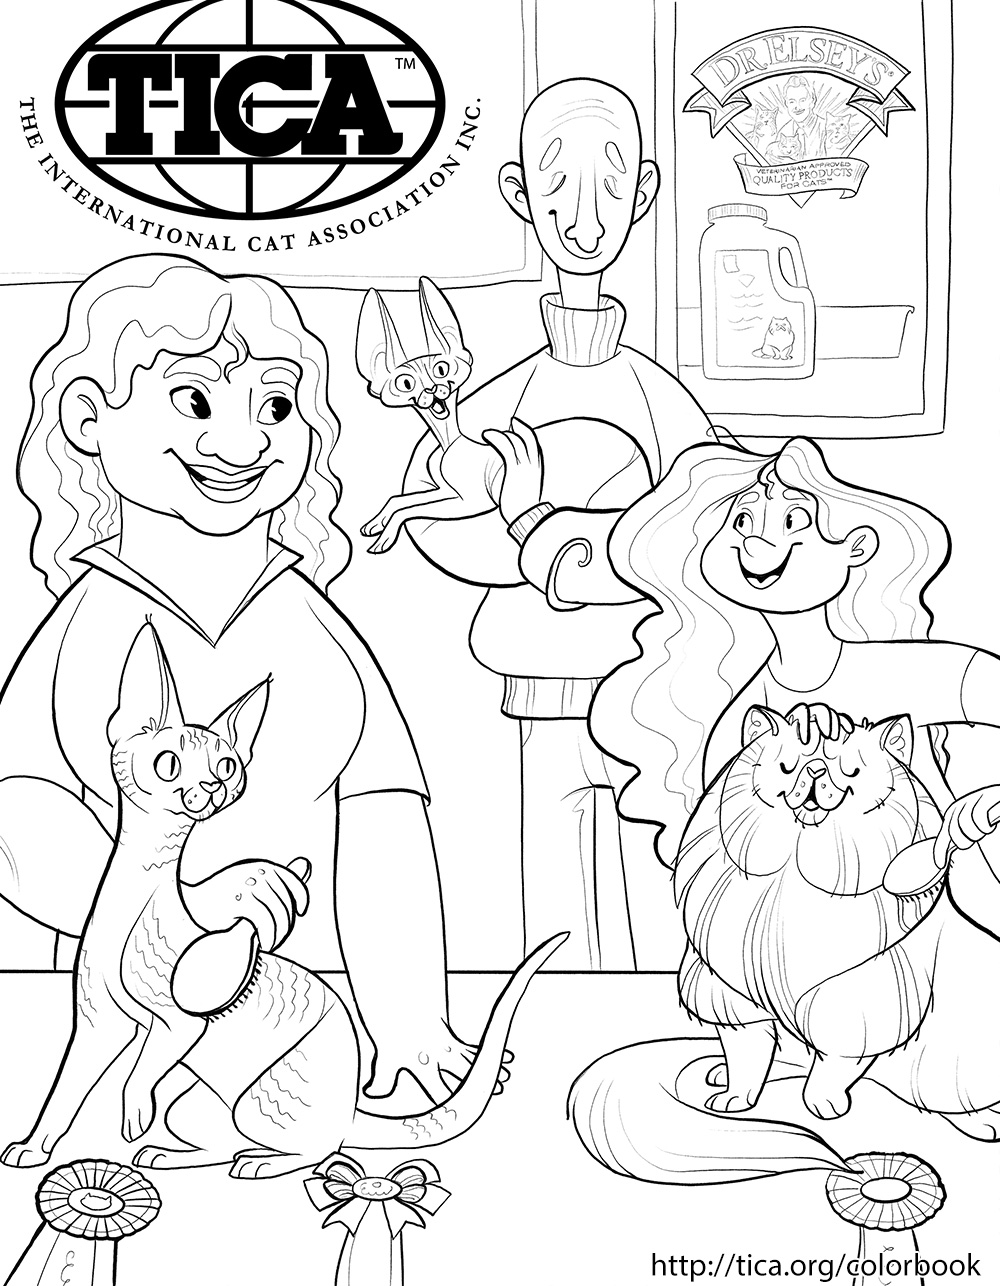 TICA Cat Coloring Book Page 3